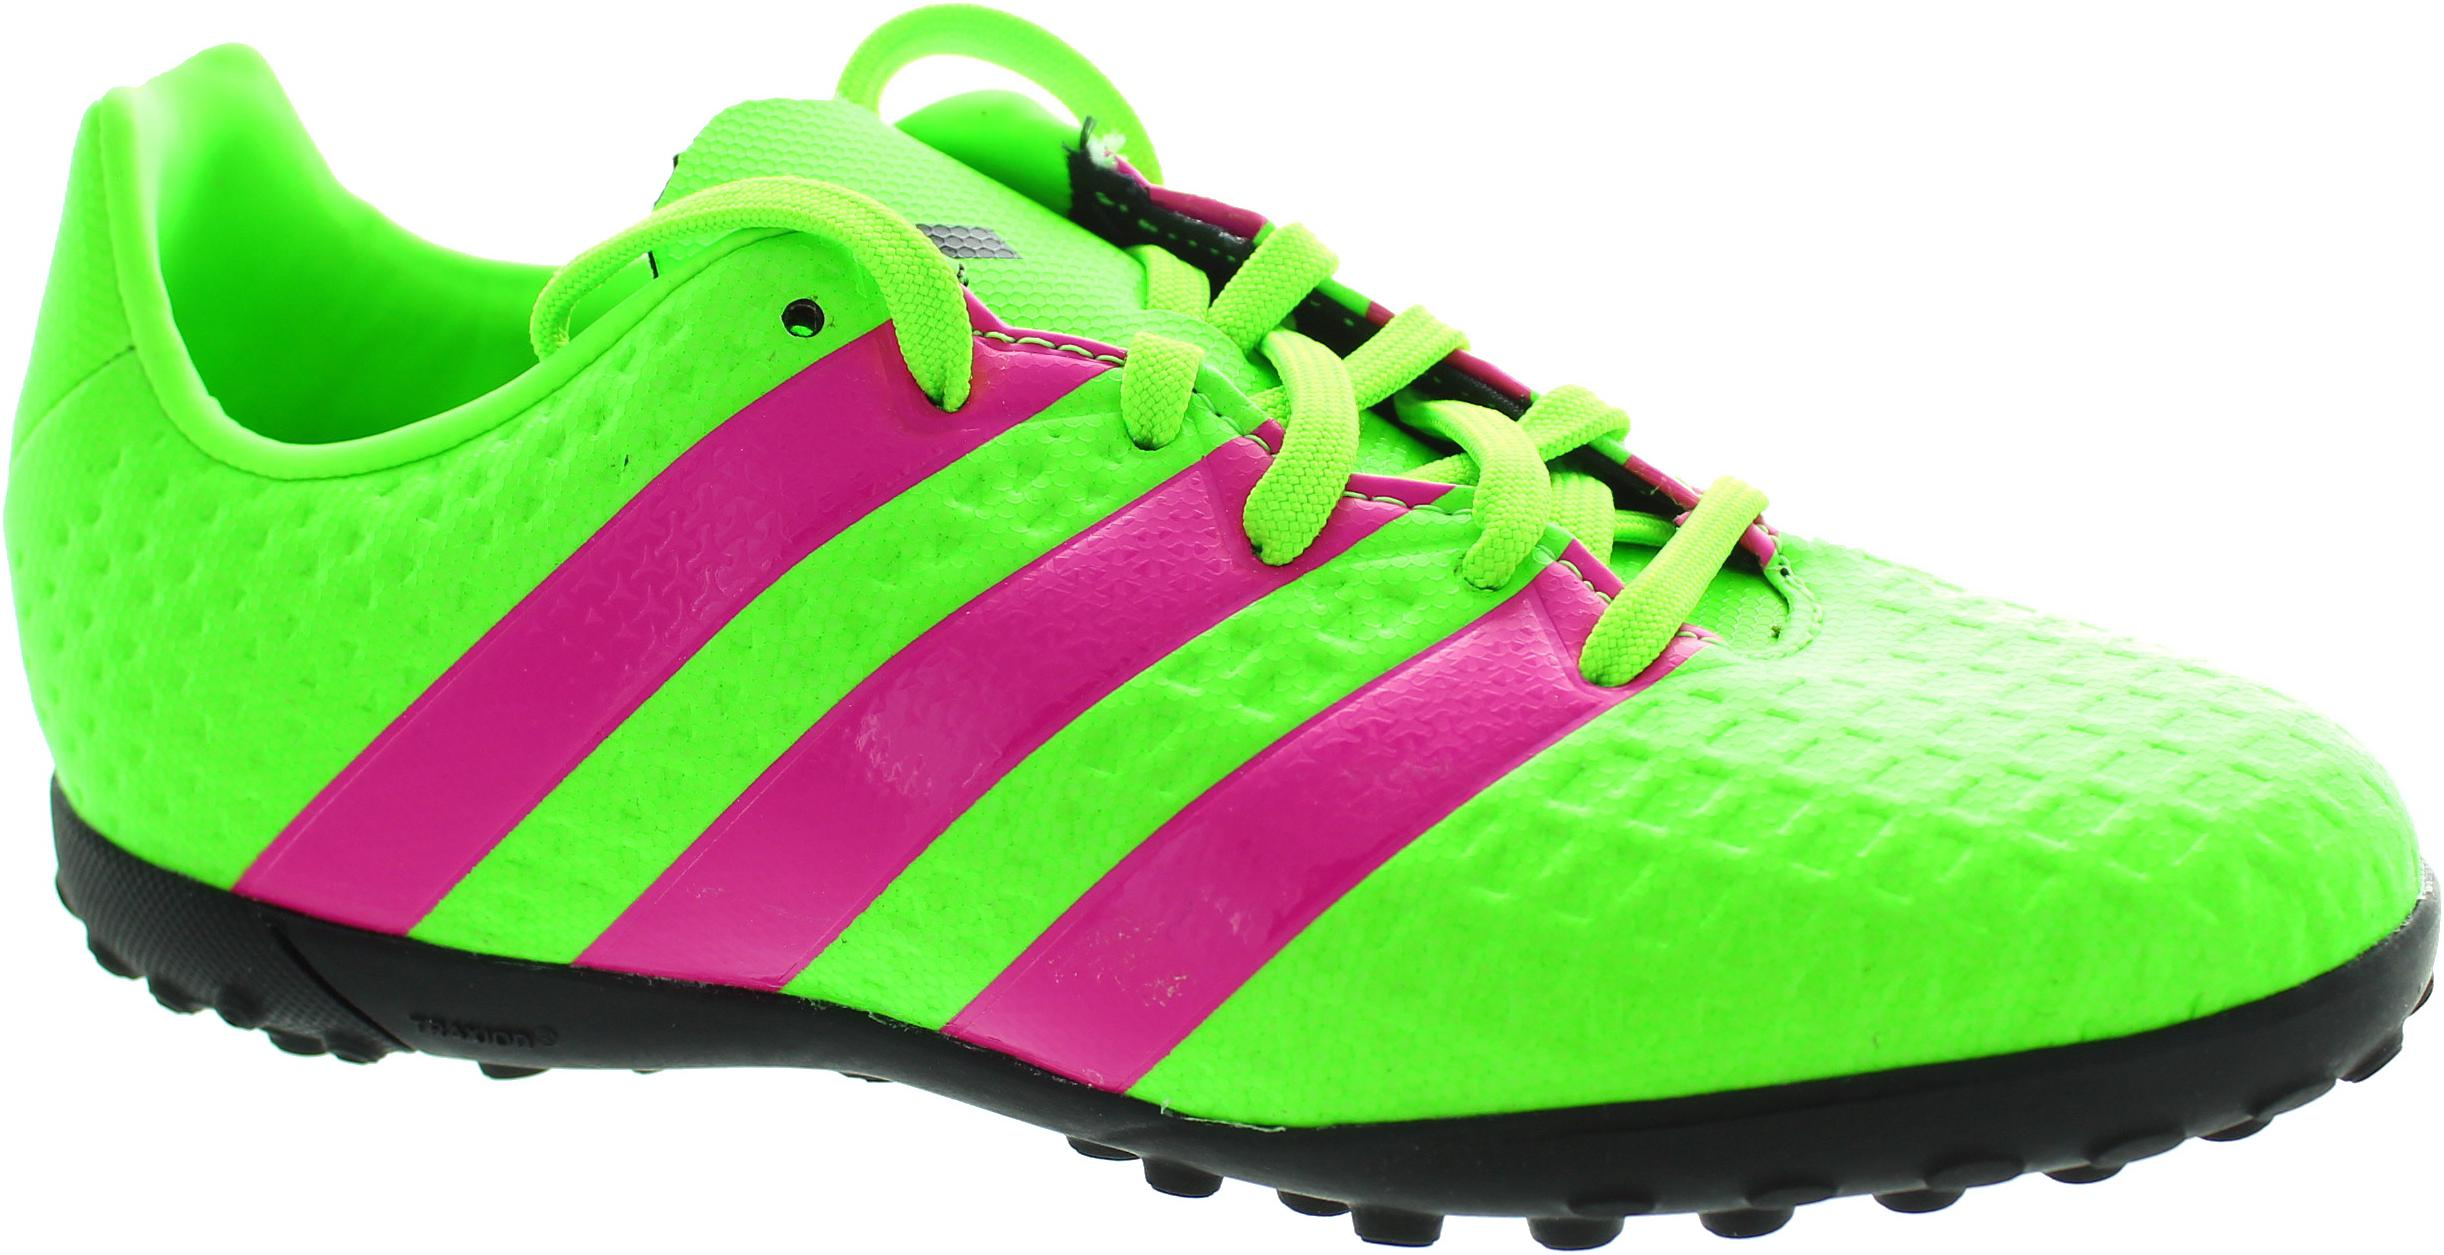 f3d350706c8ec2 adidas Kids Boys Junior 16.4 Ace Football Astro Turf Boots Trainers Green  Pink